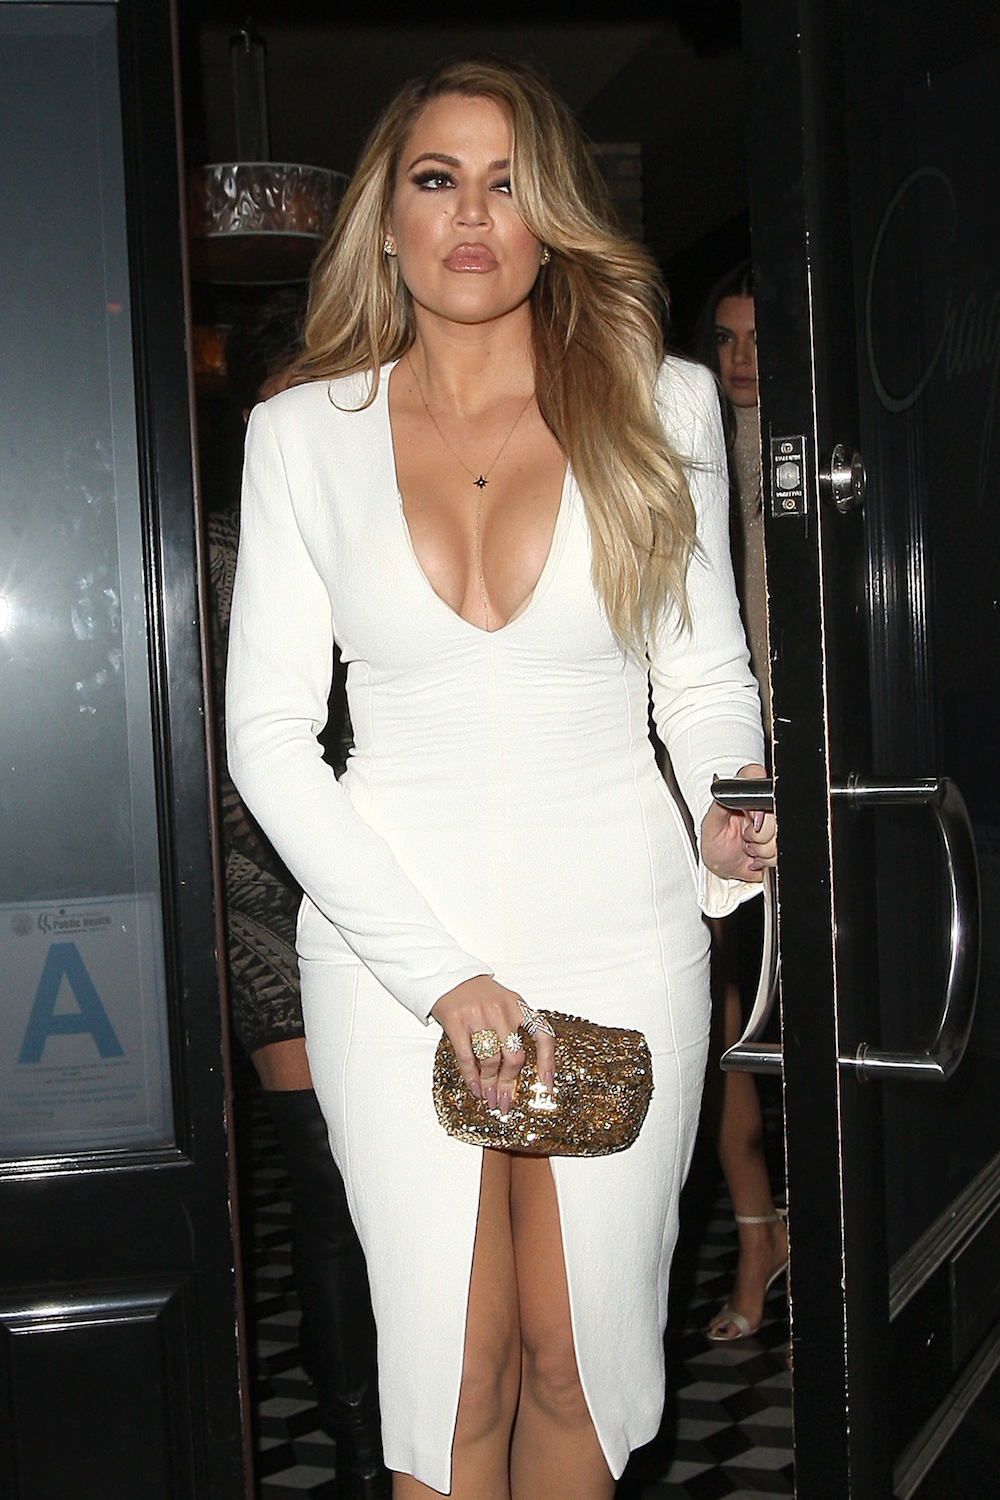 Cleavage Khloe Kardashian nudes (45 foto and video), Sexy, Is a cute, Selfie, butt 2019